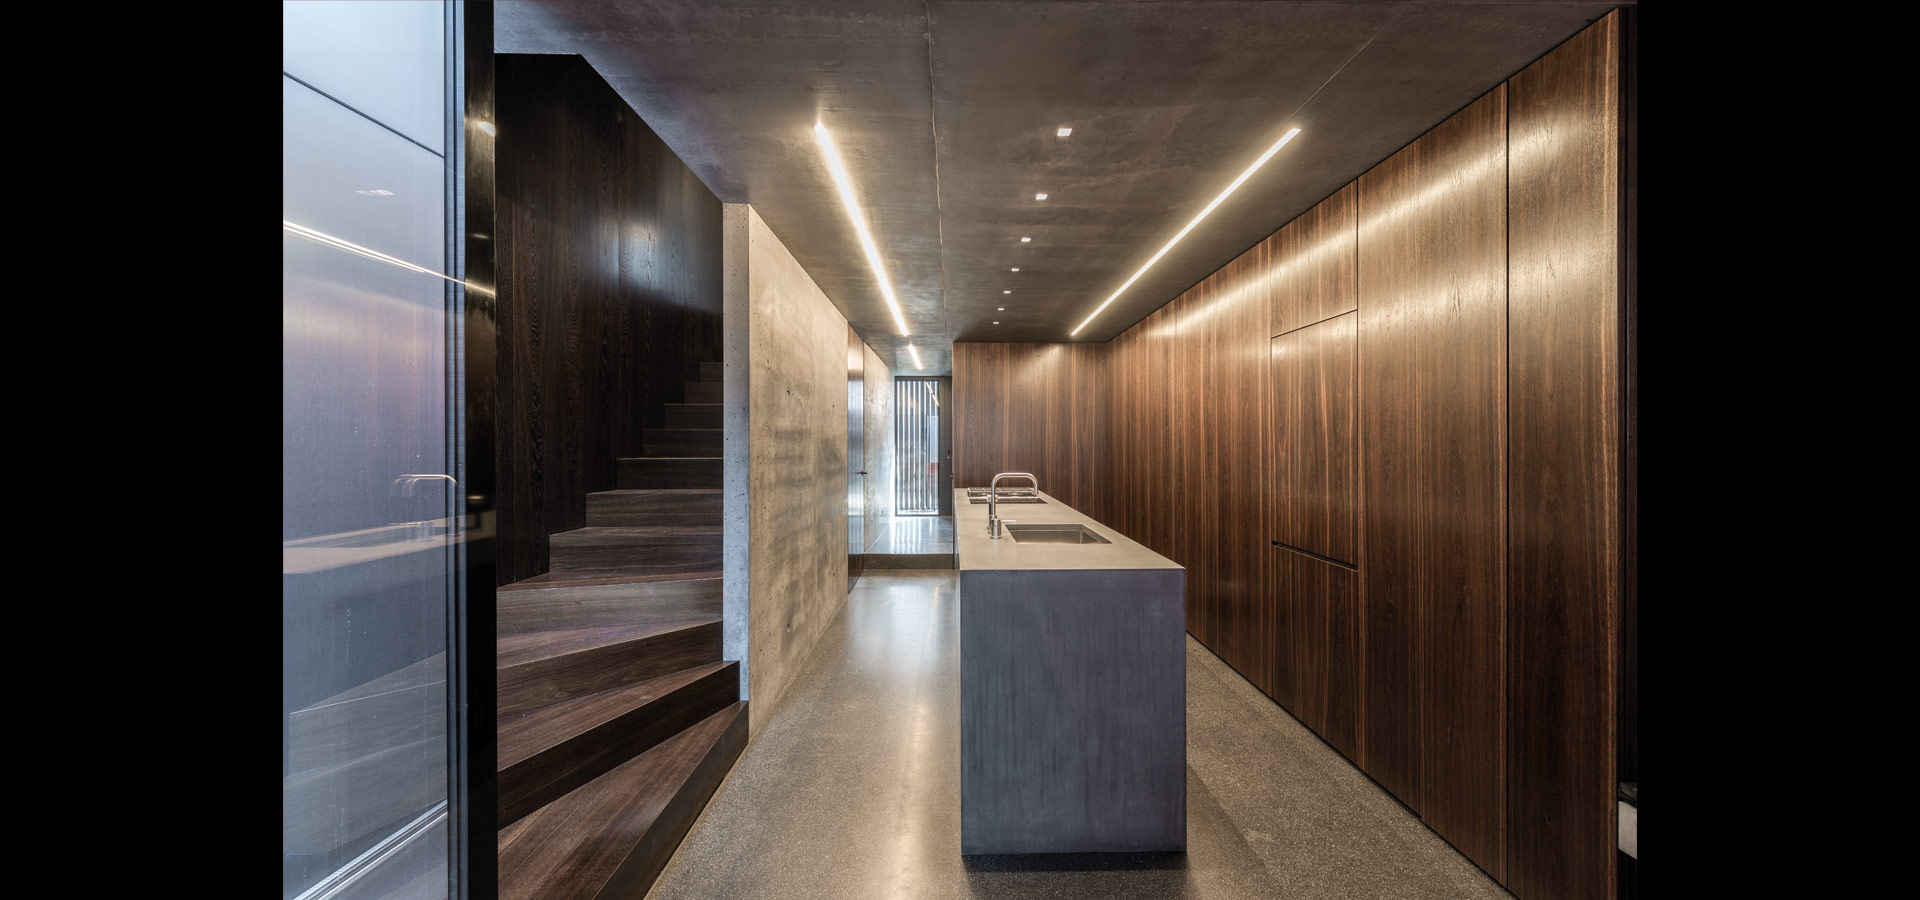 Led Linienle slim linear light lines at a home at luxsystem de